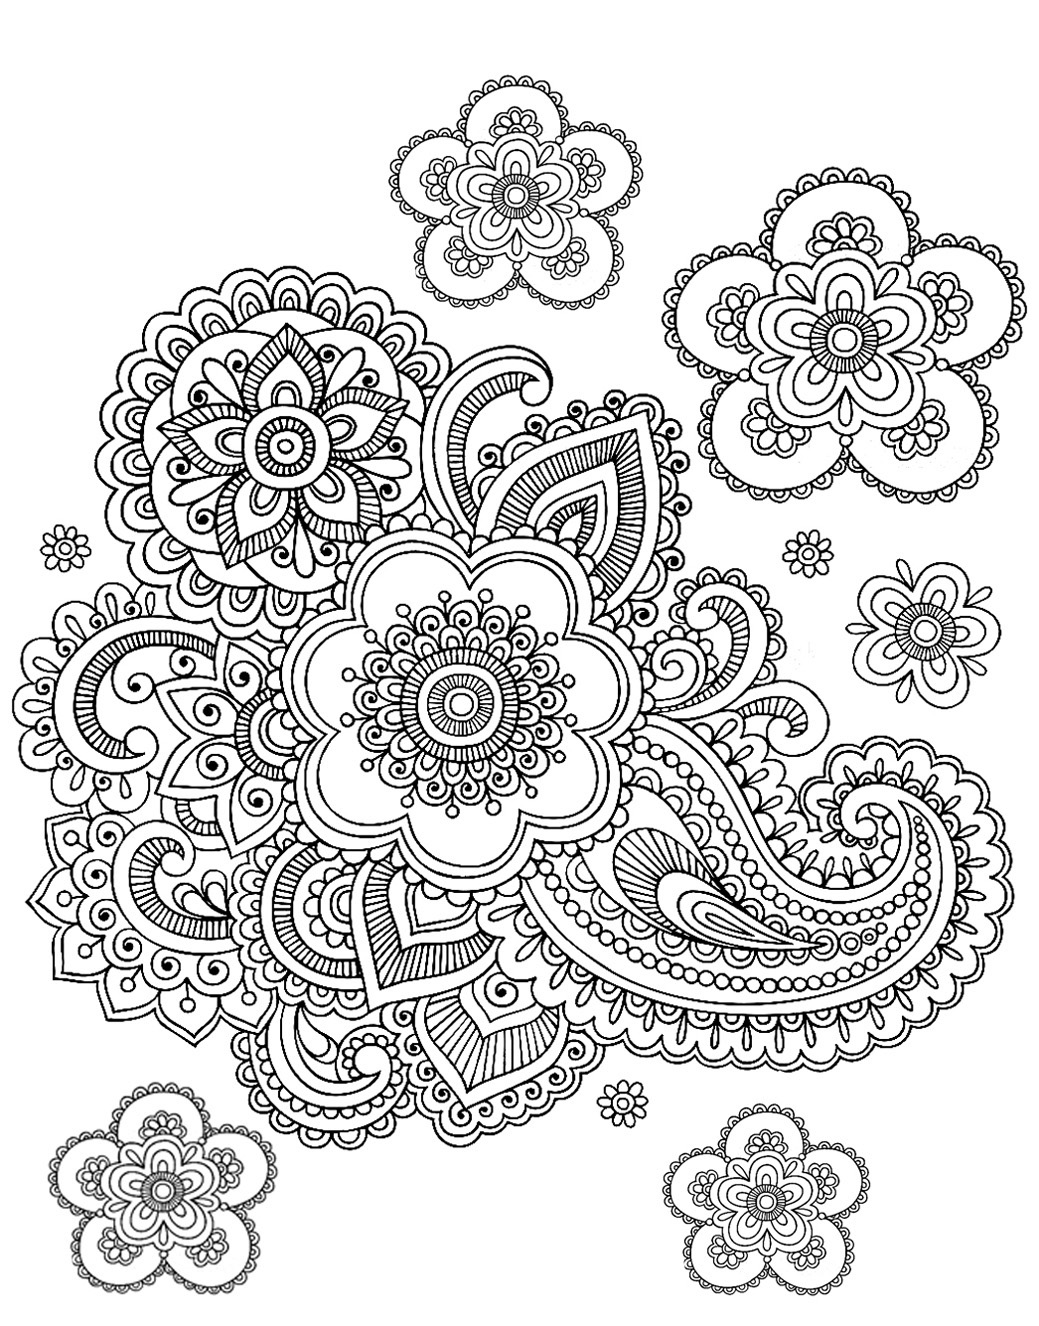 black and white coloring pages for adults doodle art doodling 5 doodle art doodling coloring white and for black pages adults coloring